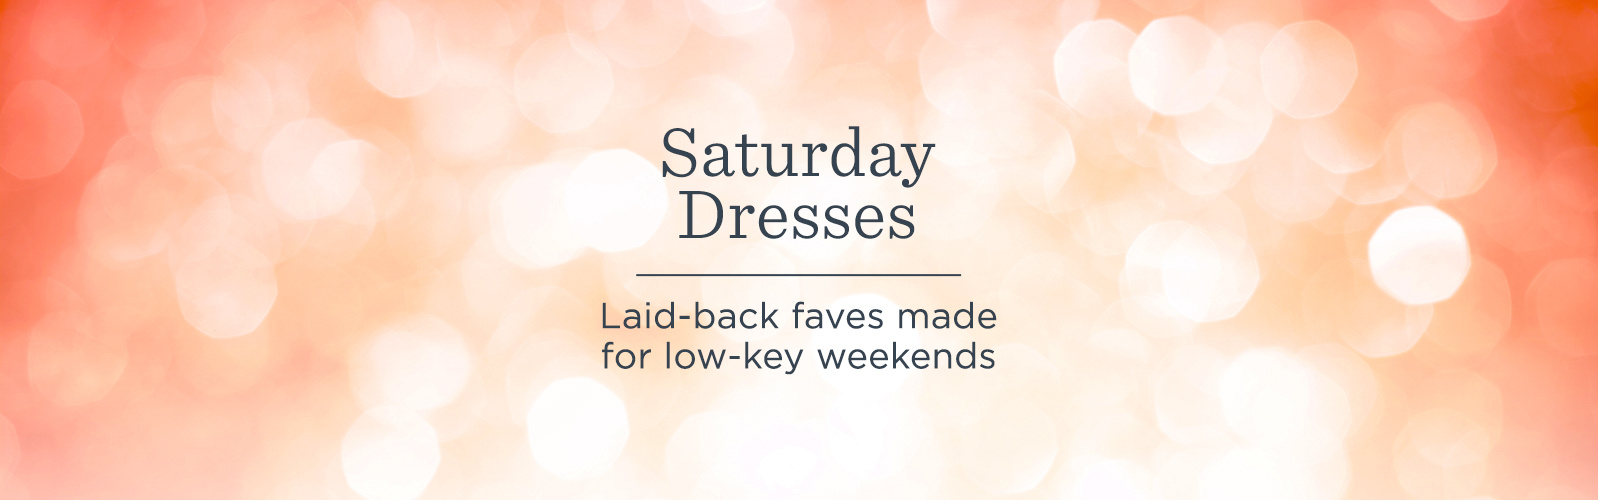 Saturday Dresses. Laid-back faves made for low-key weekends